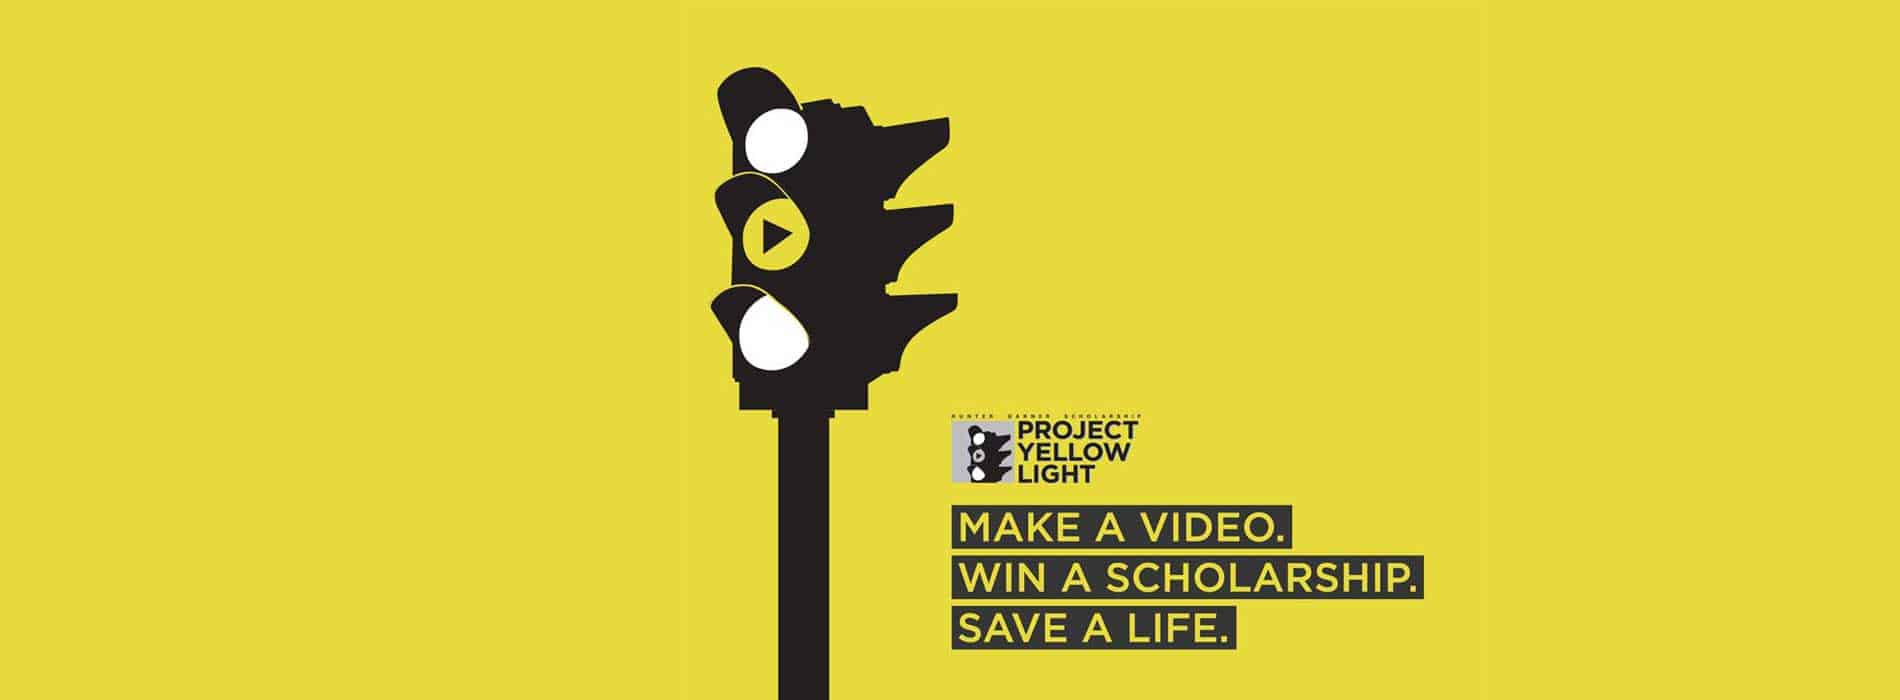 Project Yellow Light Social Good Campaign